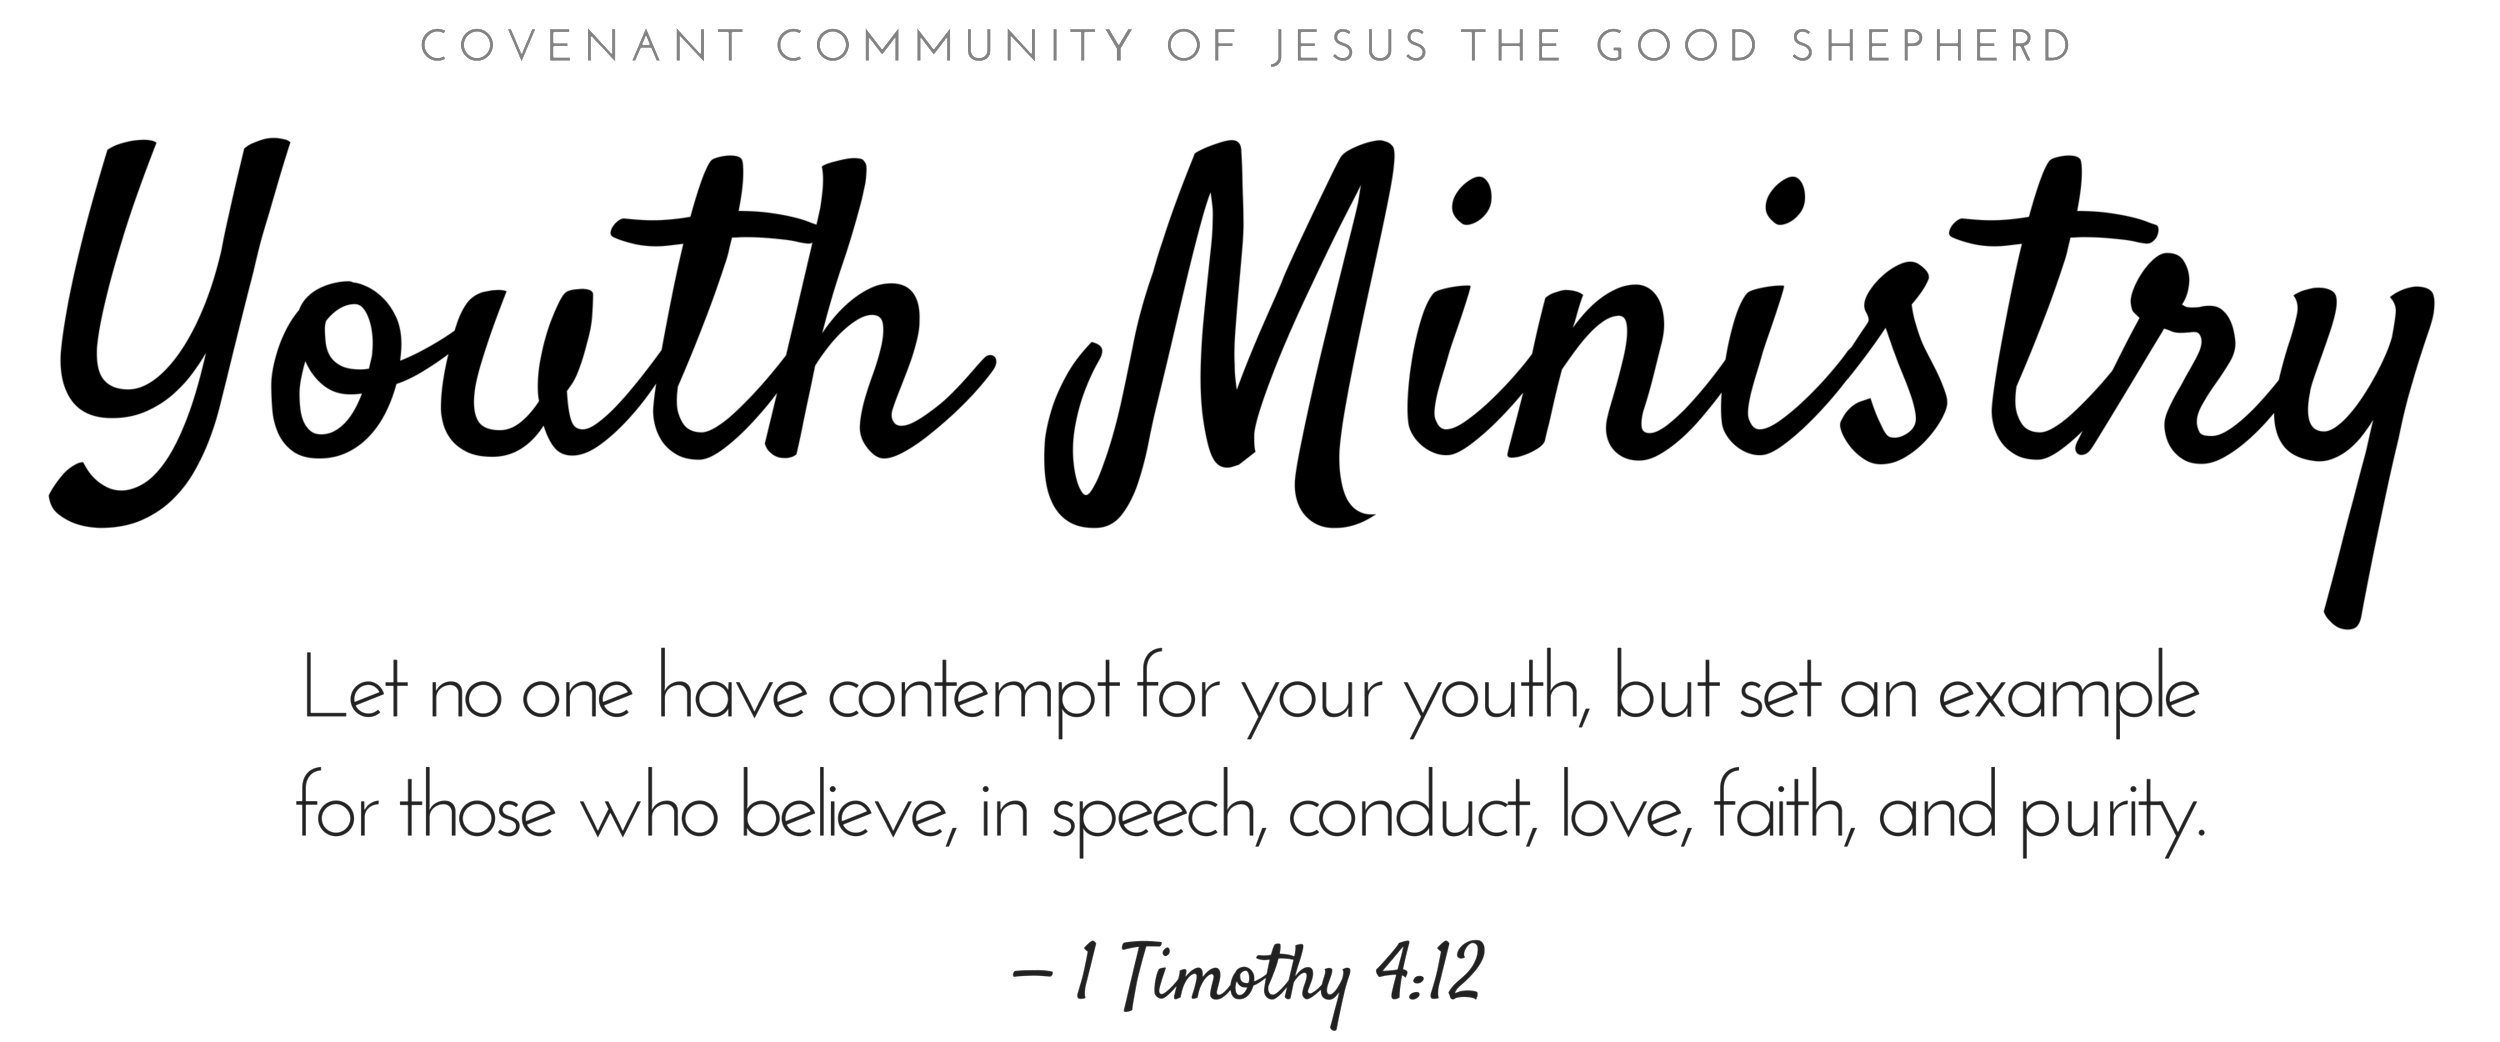 Youth Ministry website header (2).png